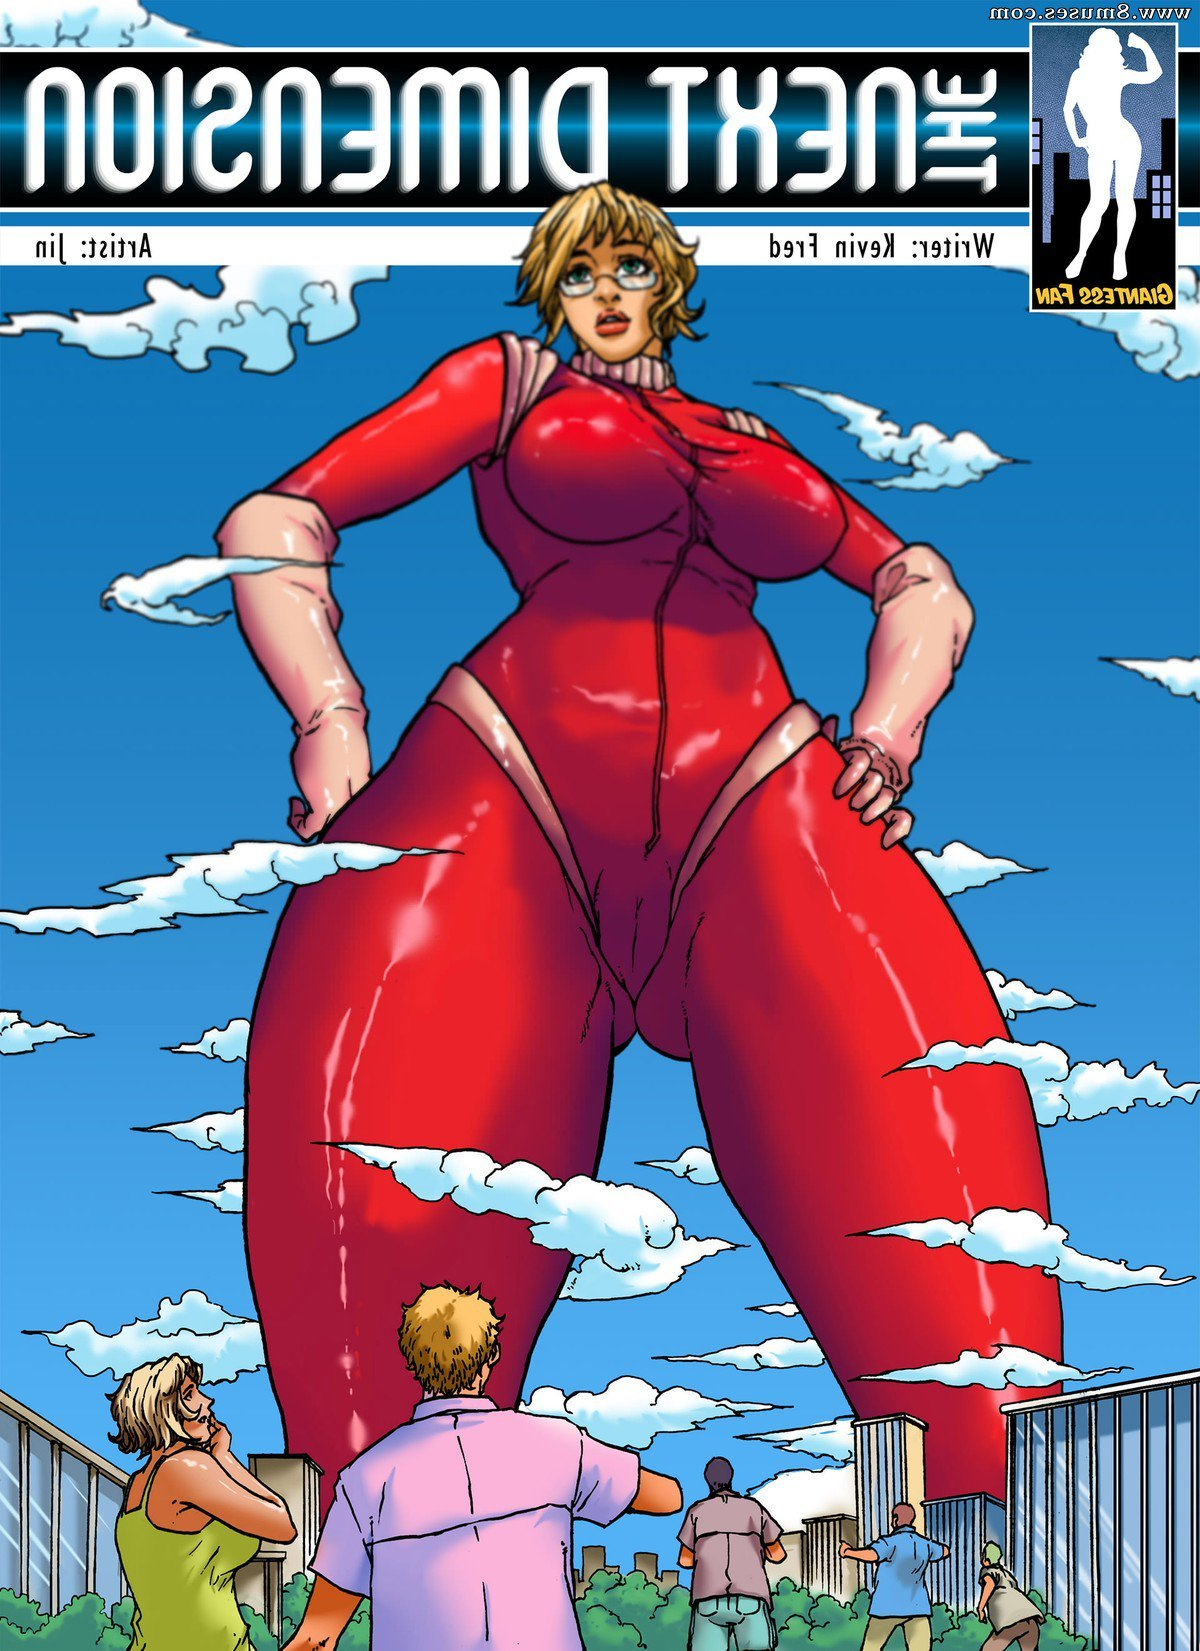 Giantess-Fan-Comics/The-Next-Dimension/Issue-1 The_Next_Dimension_-_Issue_1.jpg